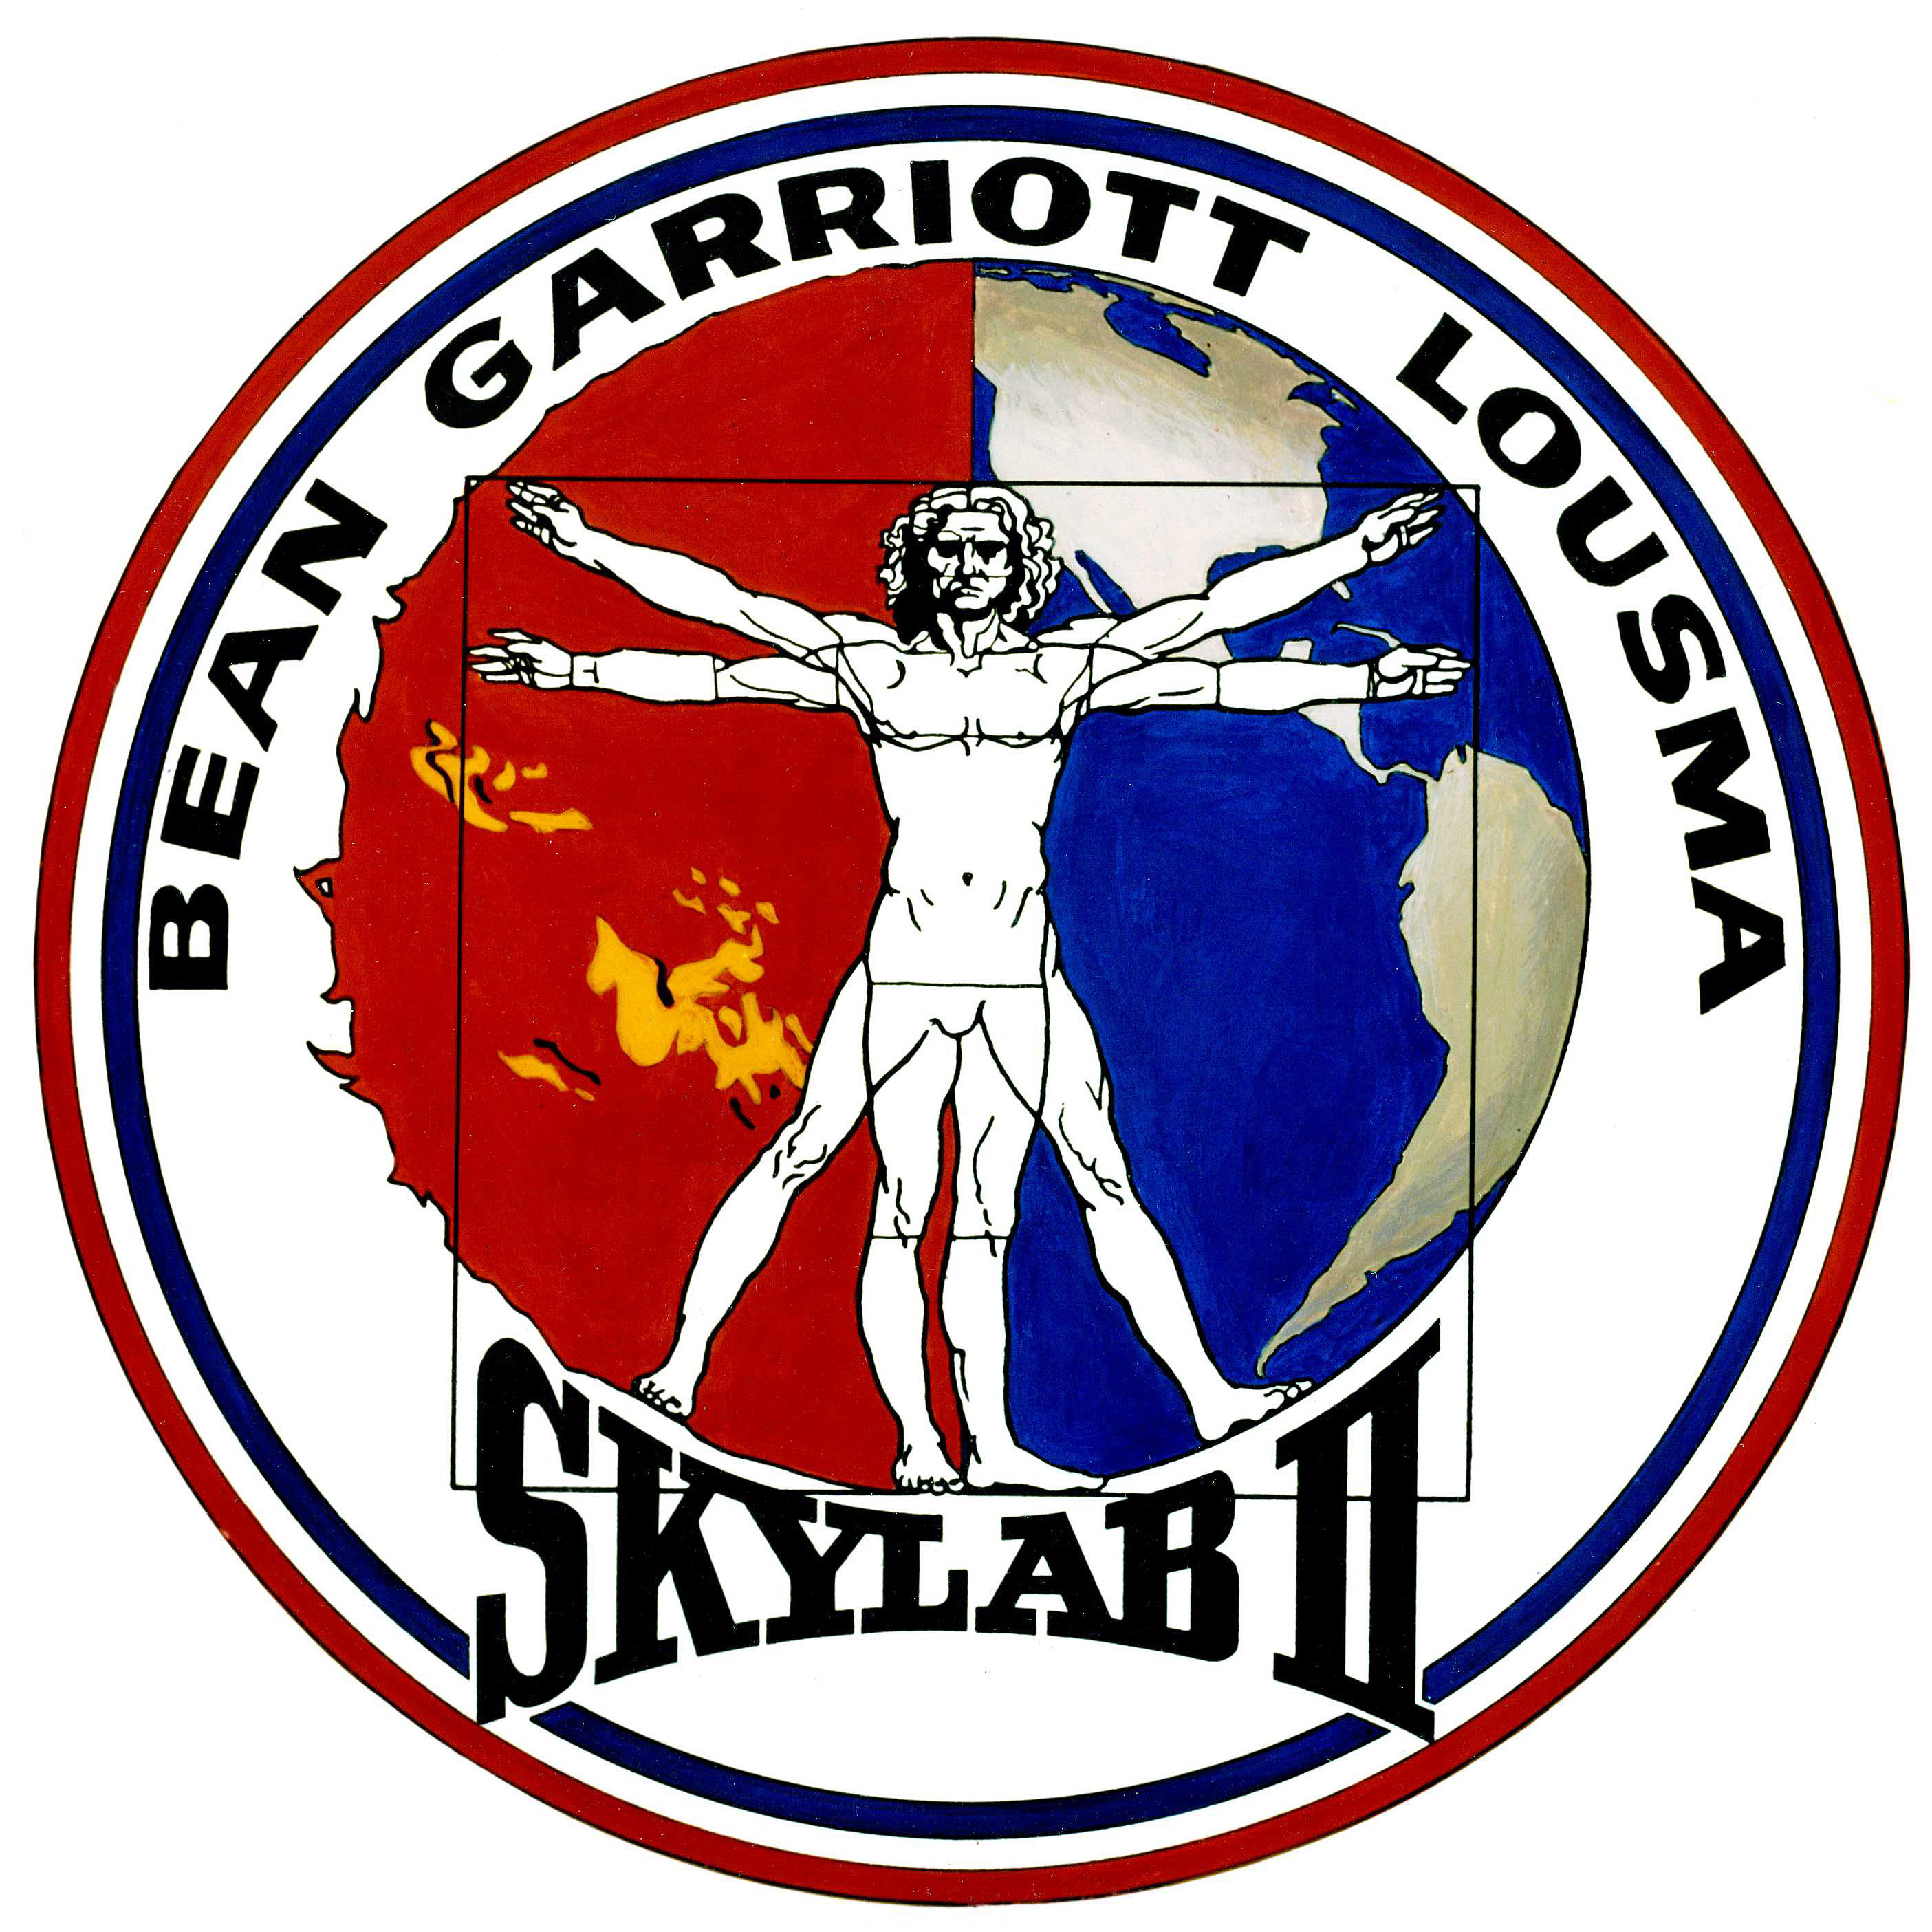 Skylab 3 - Mission patch